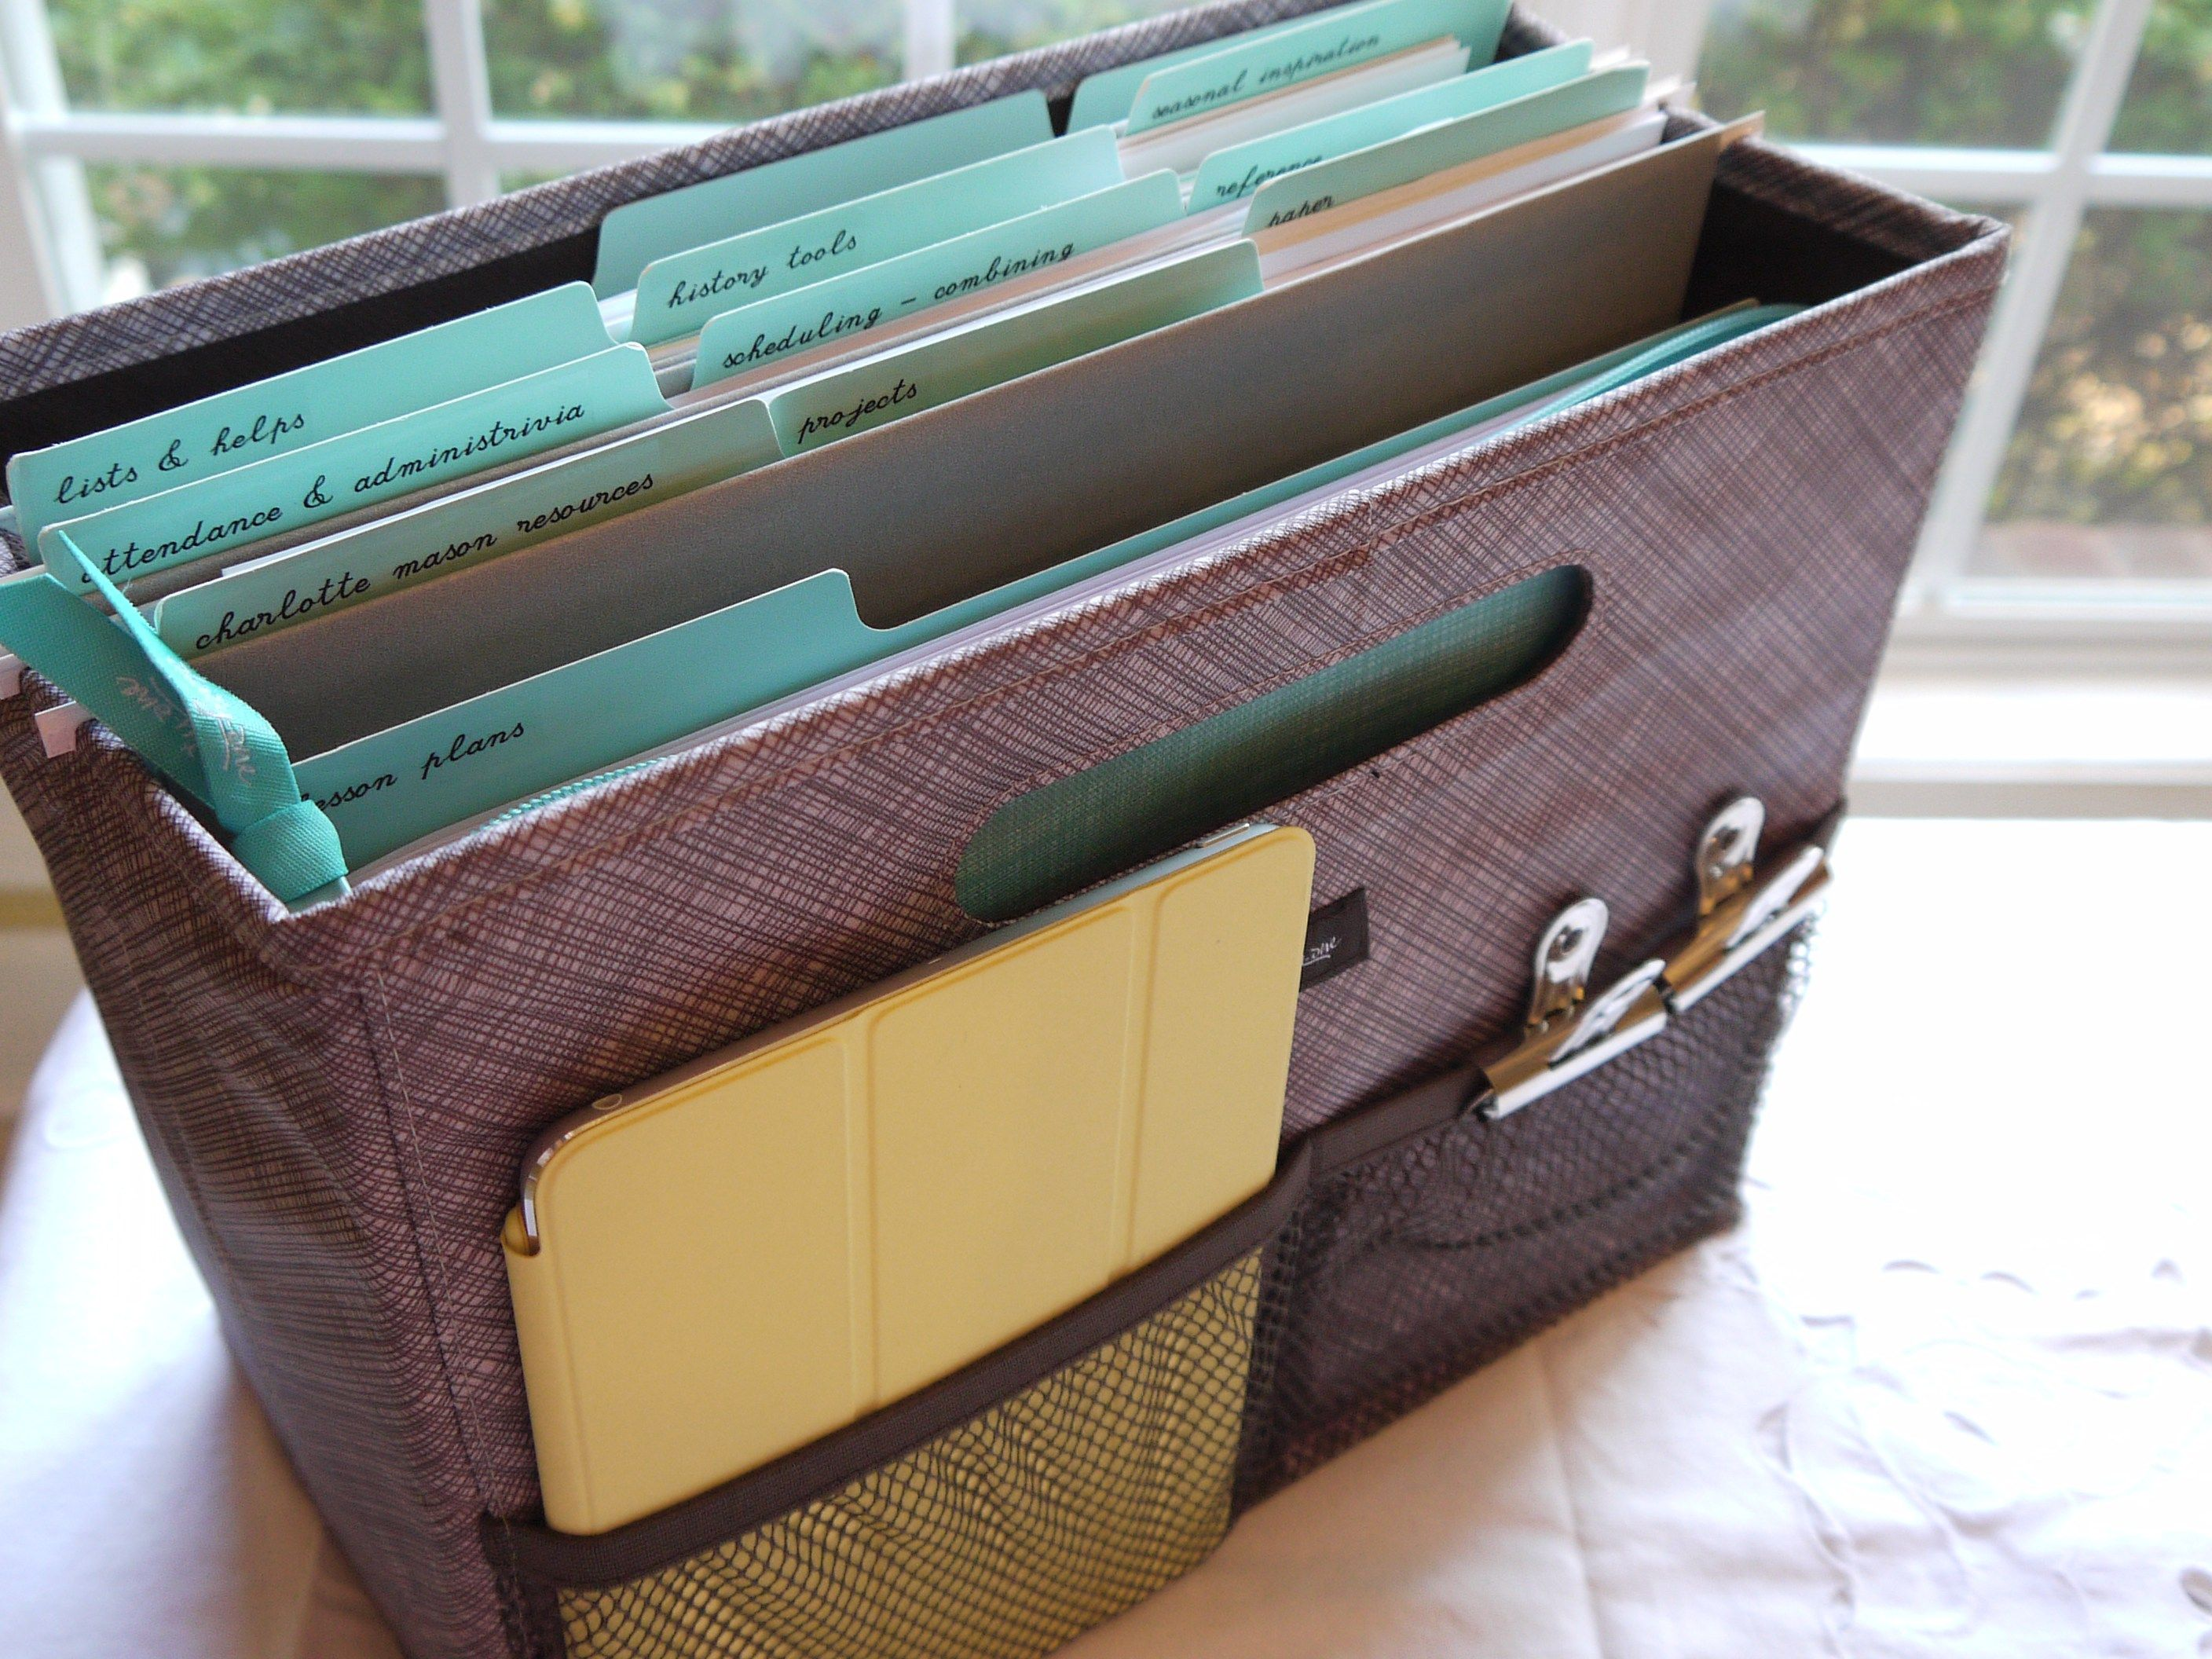 Thirty one november customer special 2014 - My Desk In A Bag Thirty One Gifts Organizing Utility Tote